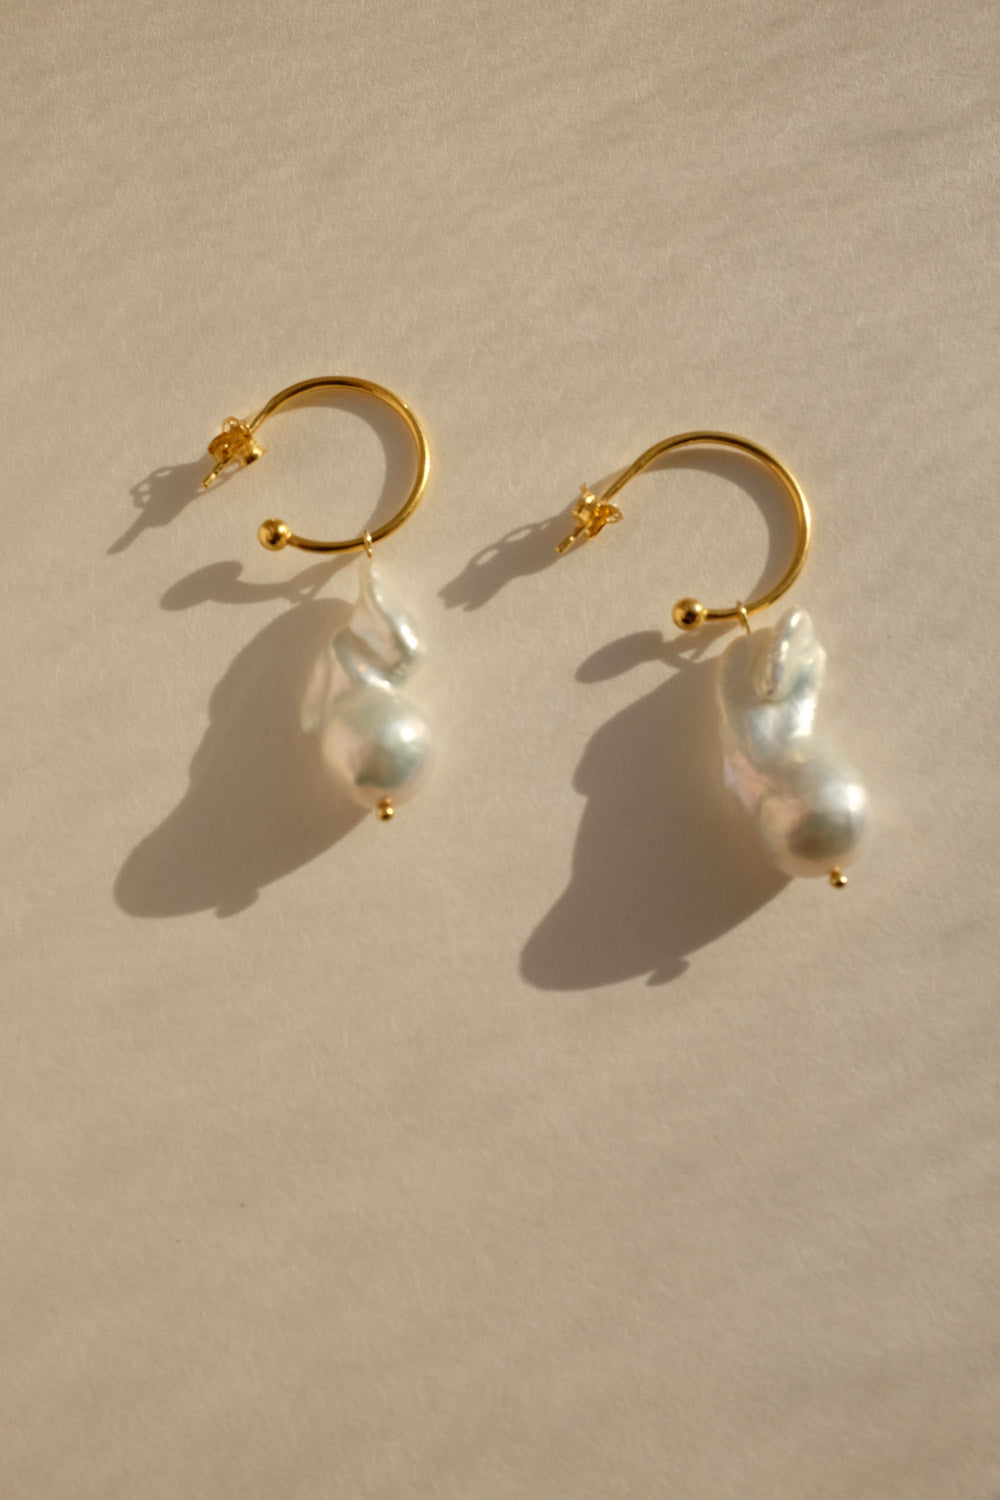 0026_GOLD HOOPS WITH VINTAGE PEARL